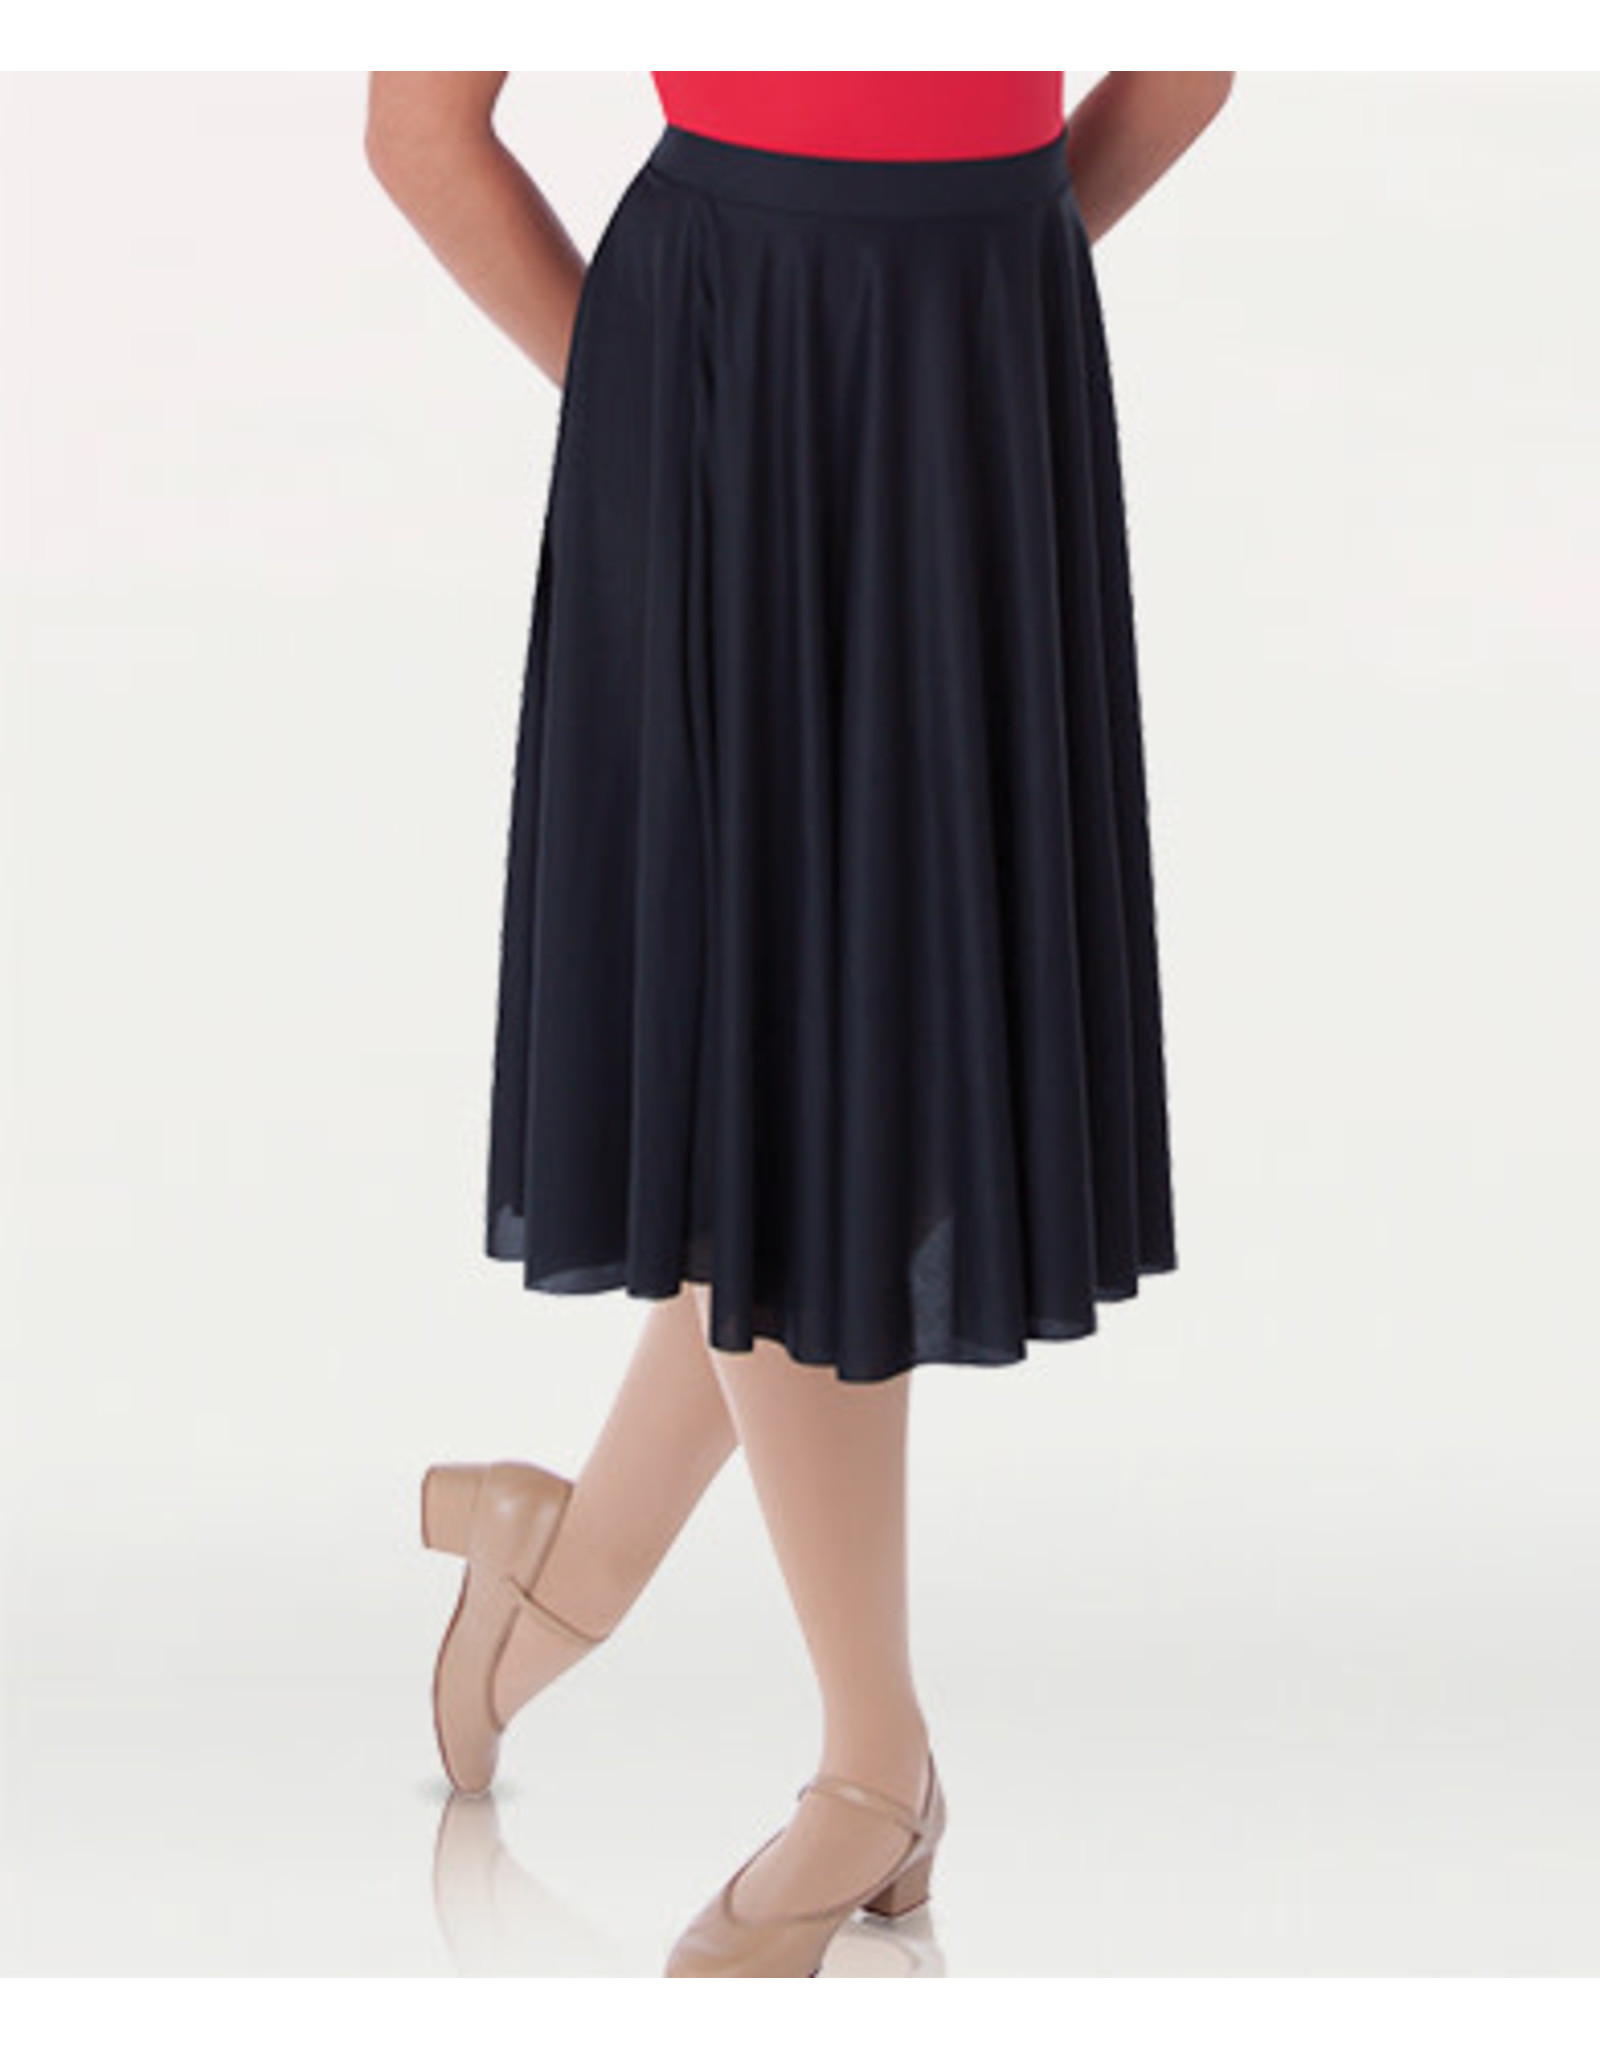 Body Wrappers Dance Below-The-Knee Circle Skirt (511)